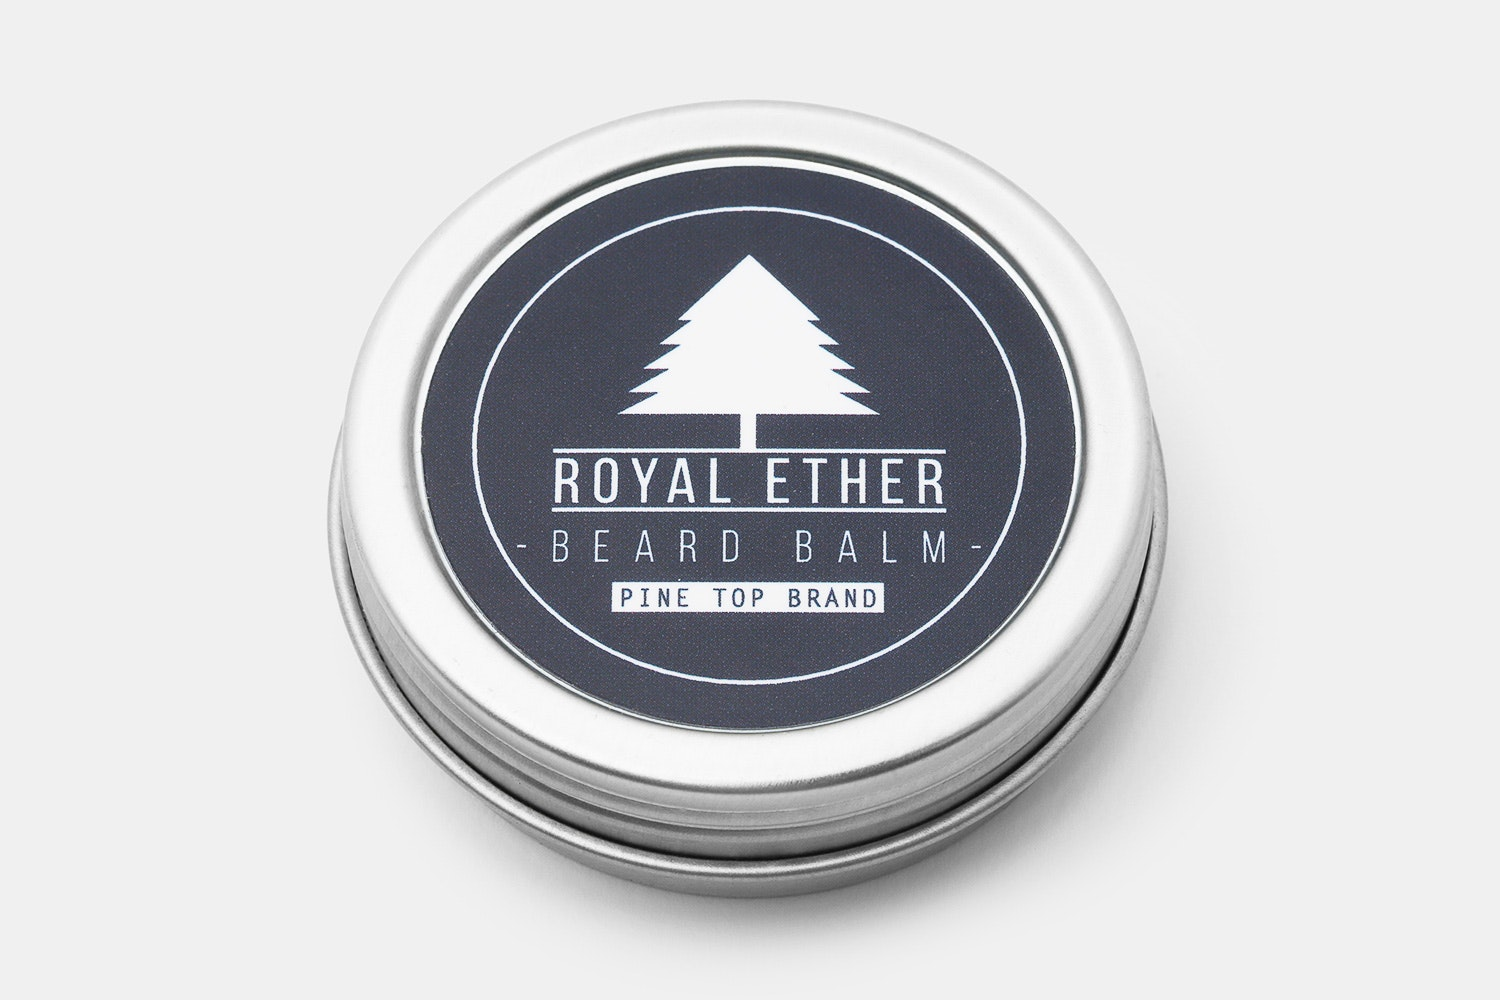 Royal Ether